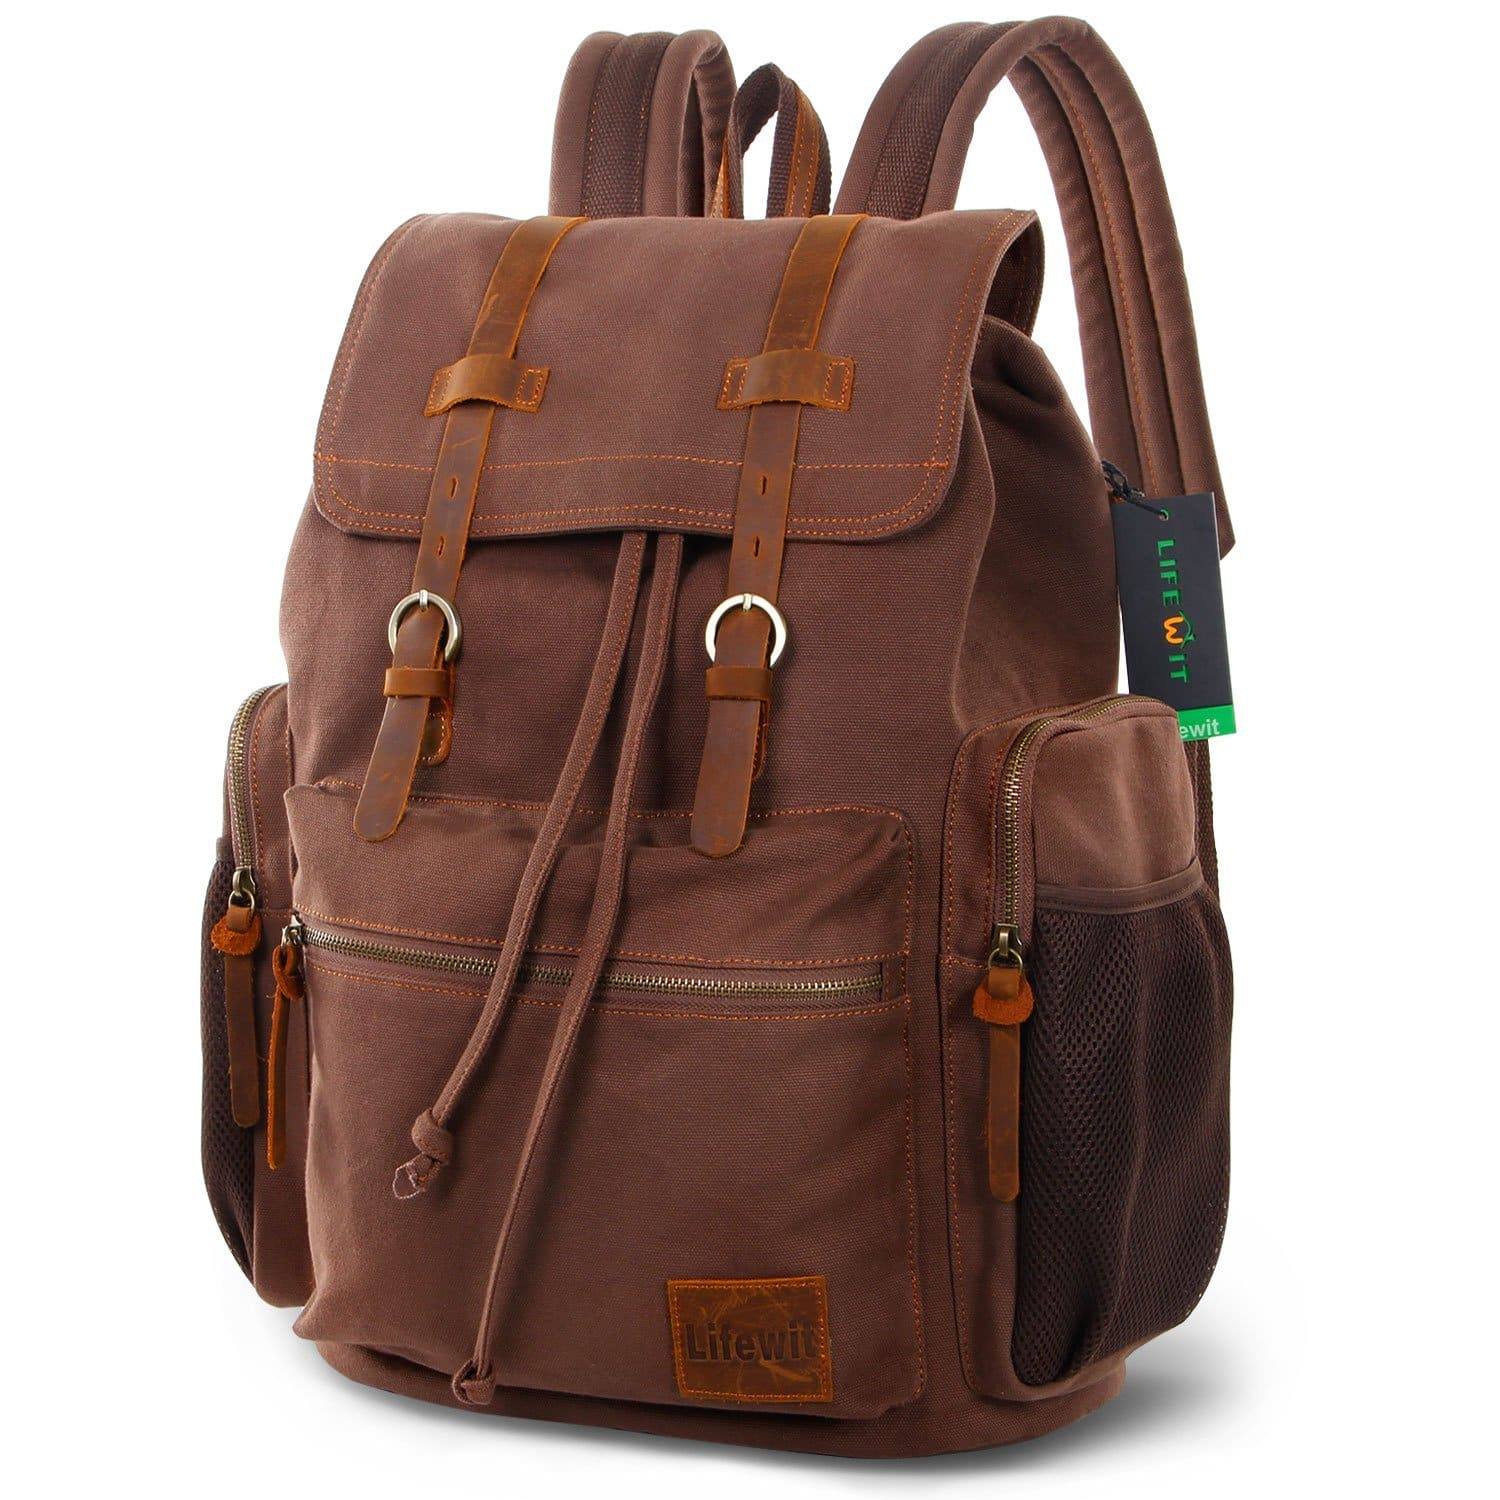 17 Inch Canvas Laptop Backpack Unisex Vintage Leather Casual $23.99